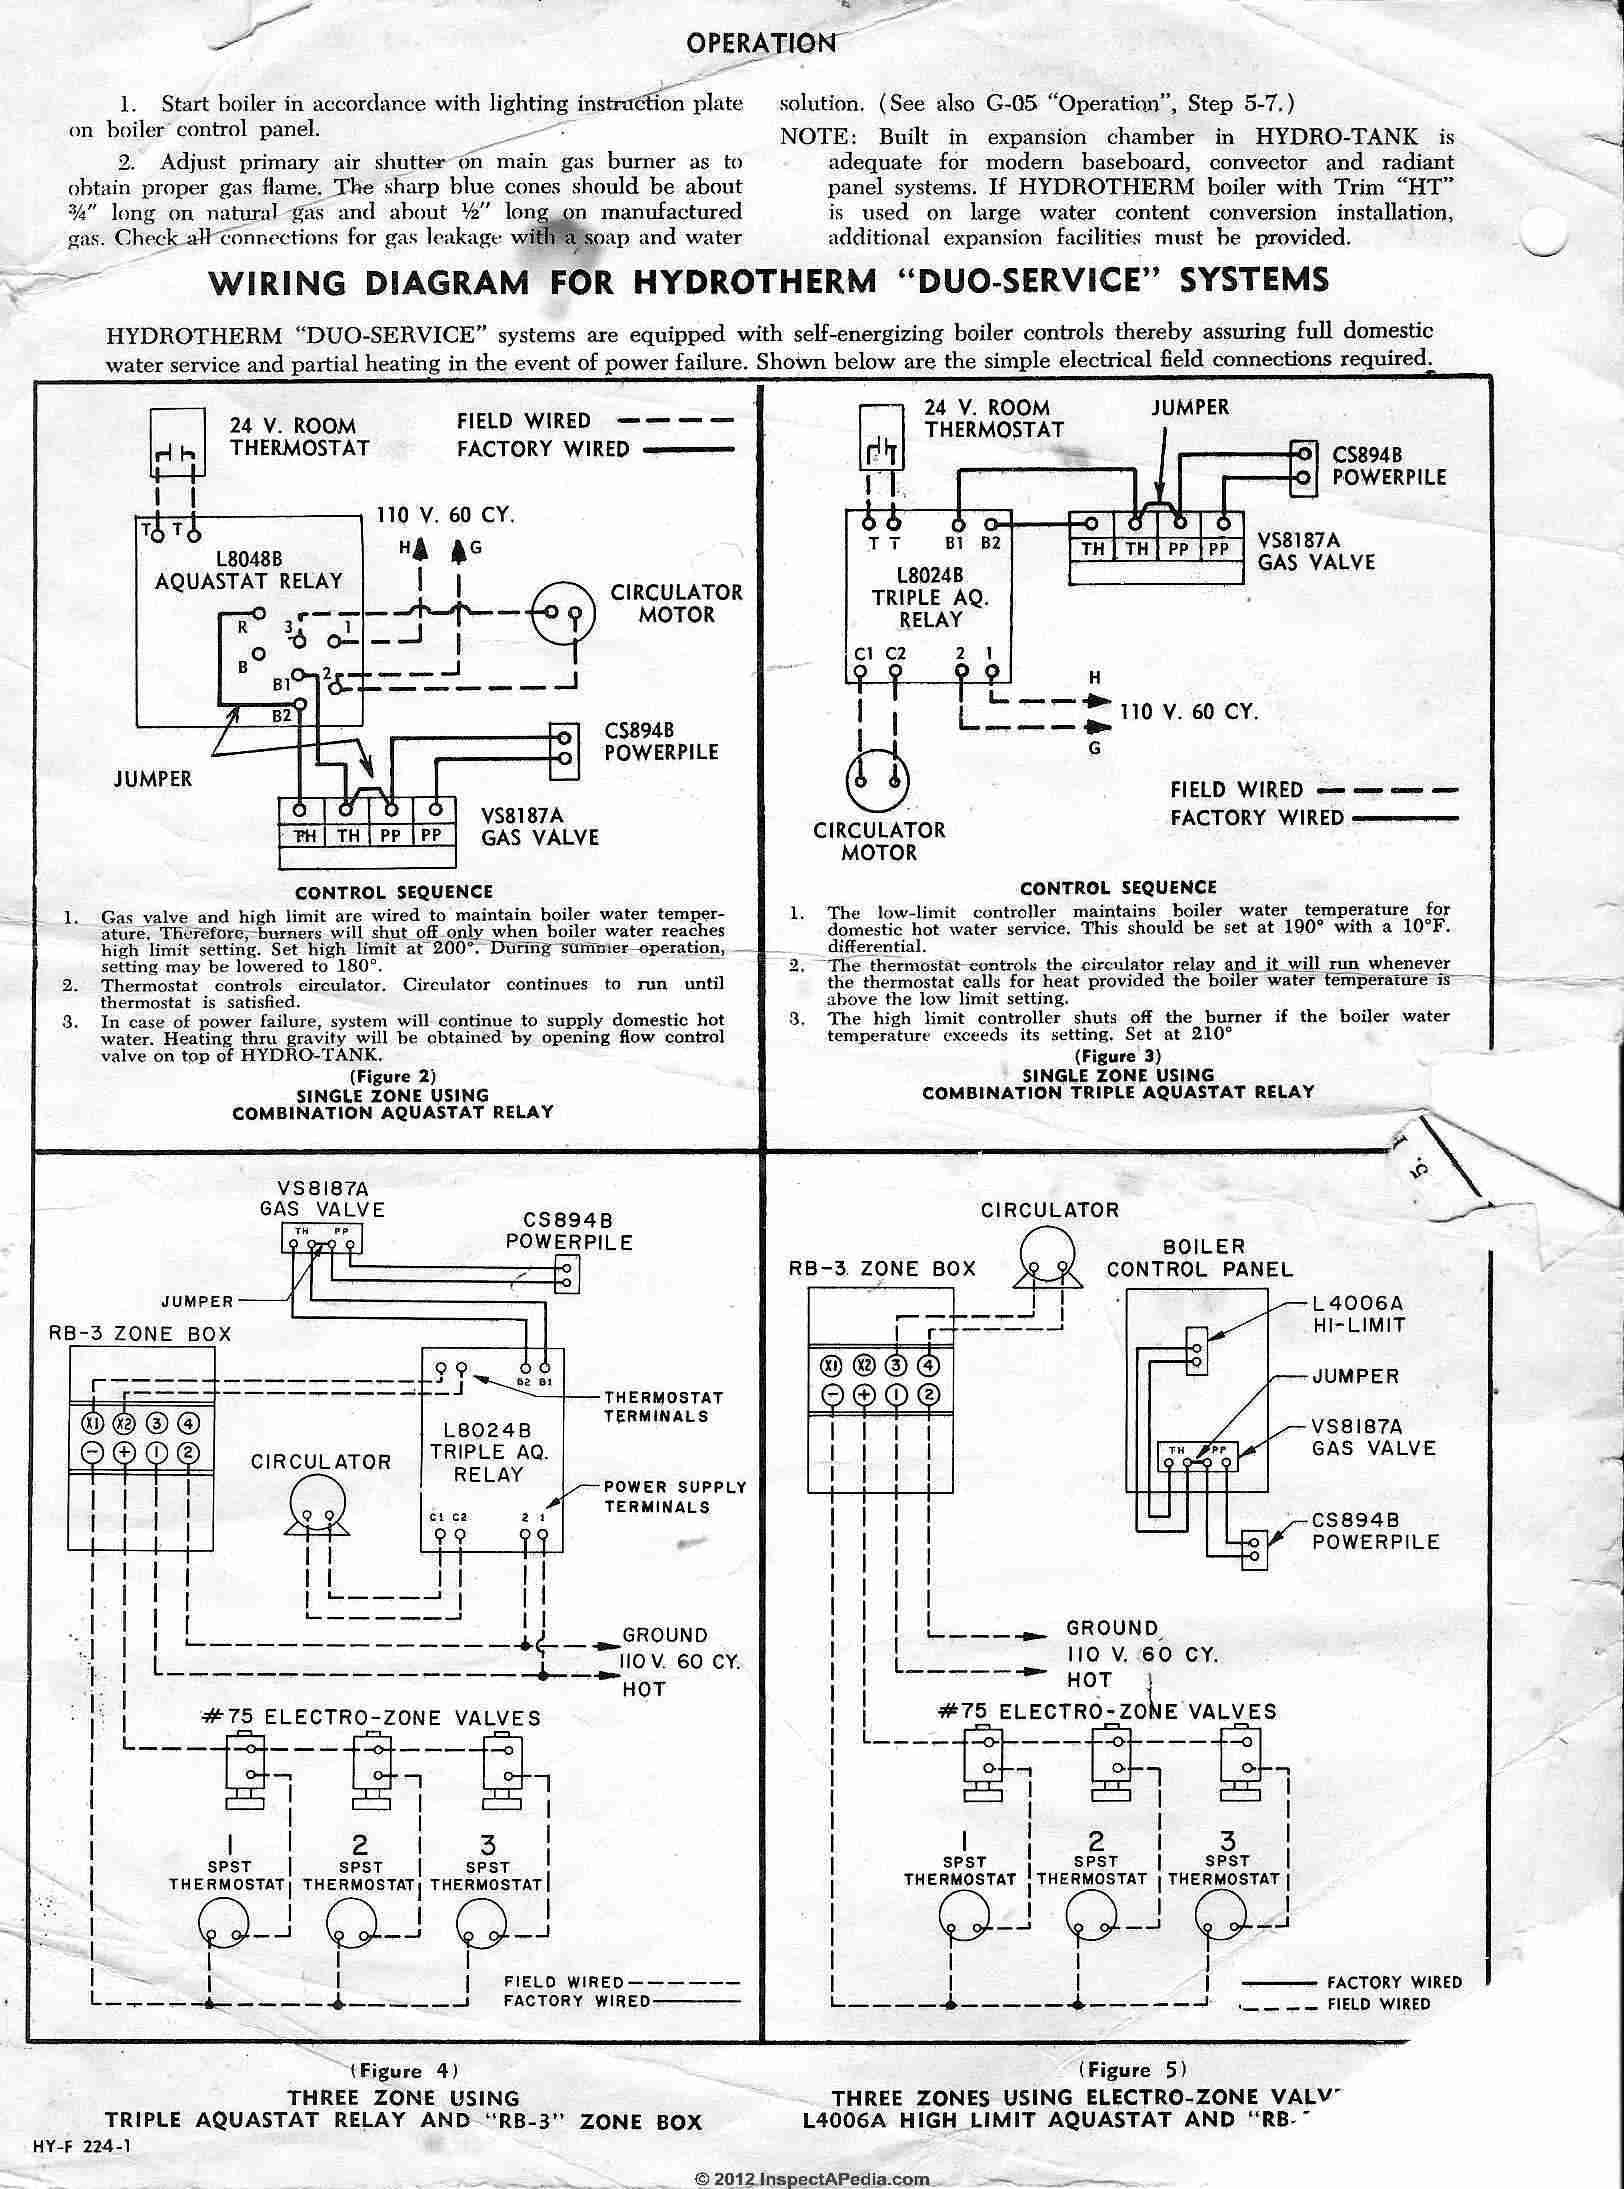 Honeywell Aquastat Wiring Diagrams Diagram For Thermostat Heating Boiler Control Diagnosis Troubleshooting Heat Pump